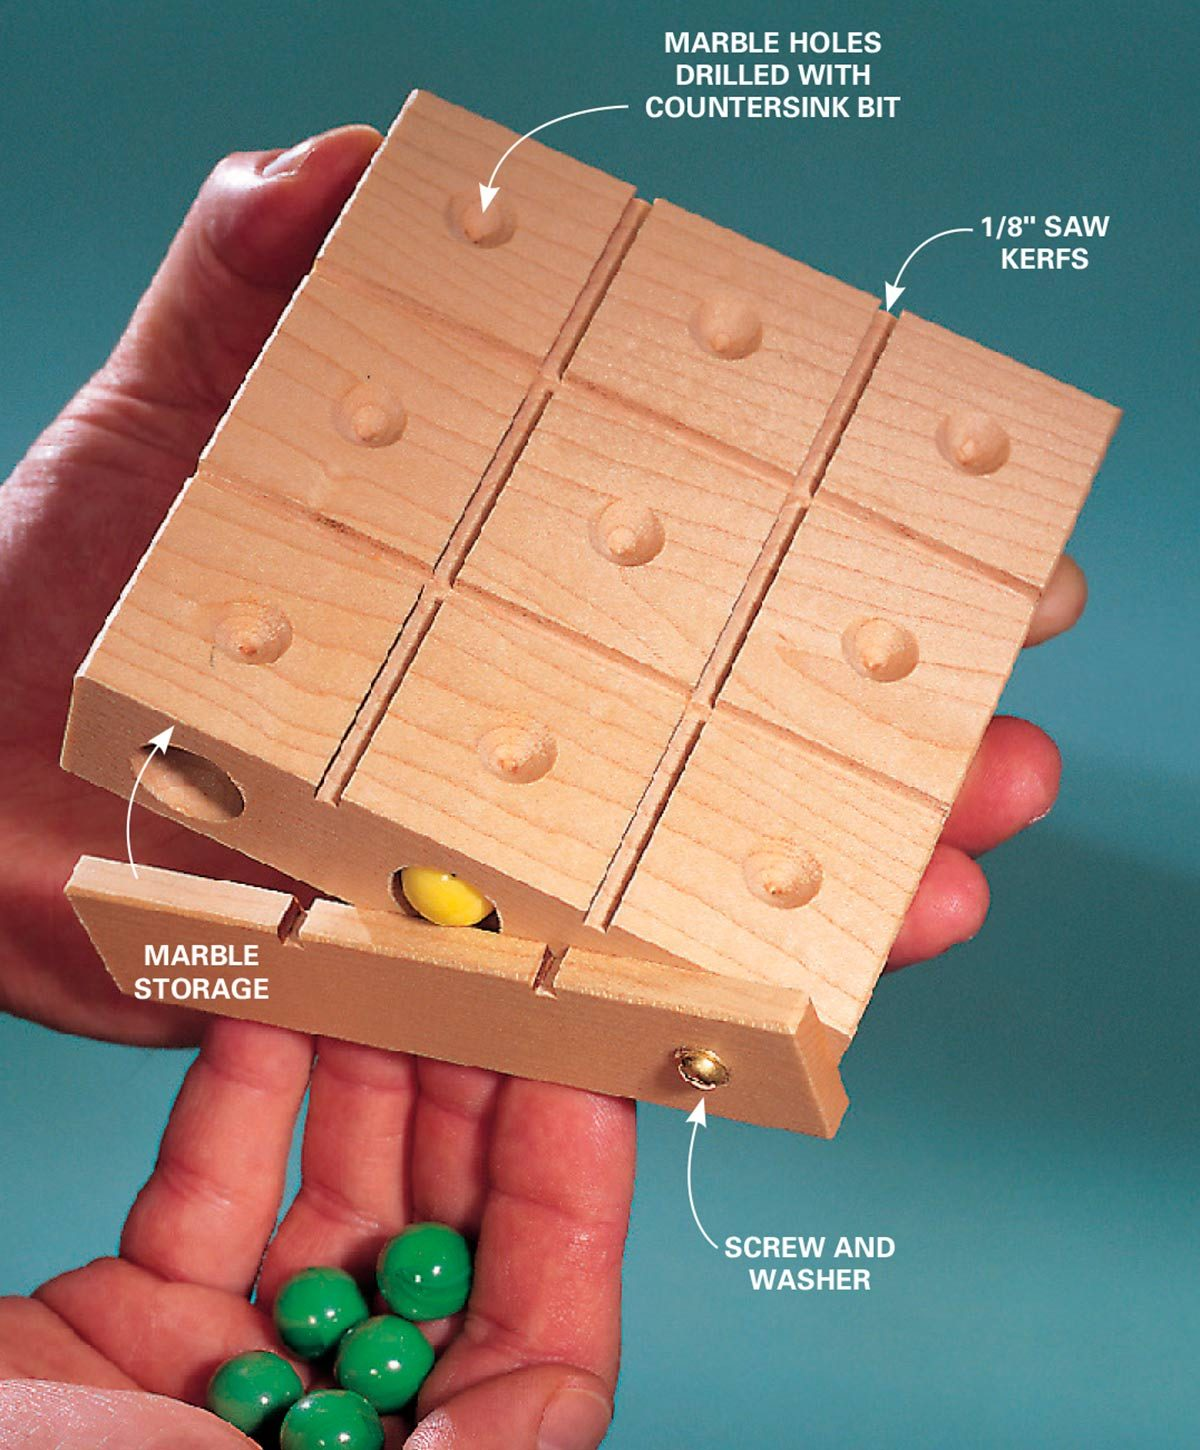 40 Outdoor Woodworking Projects For Beginners: How To Build A Take-Along Tic-Tac-Toe Board With Game